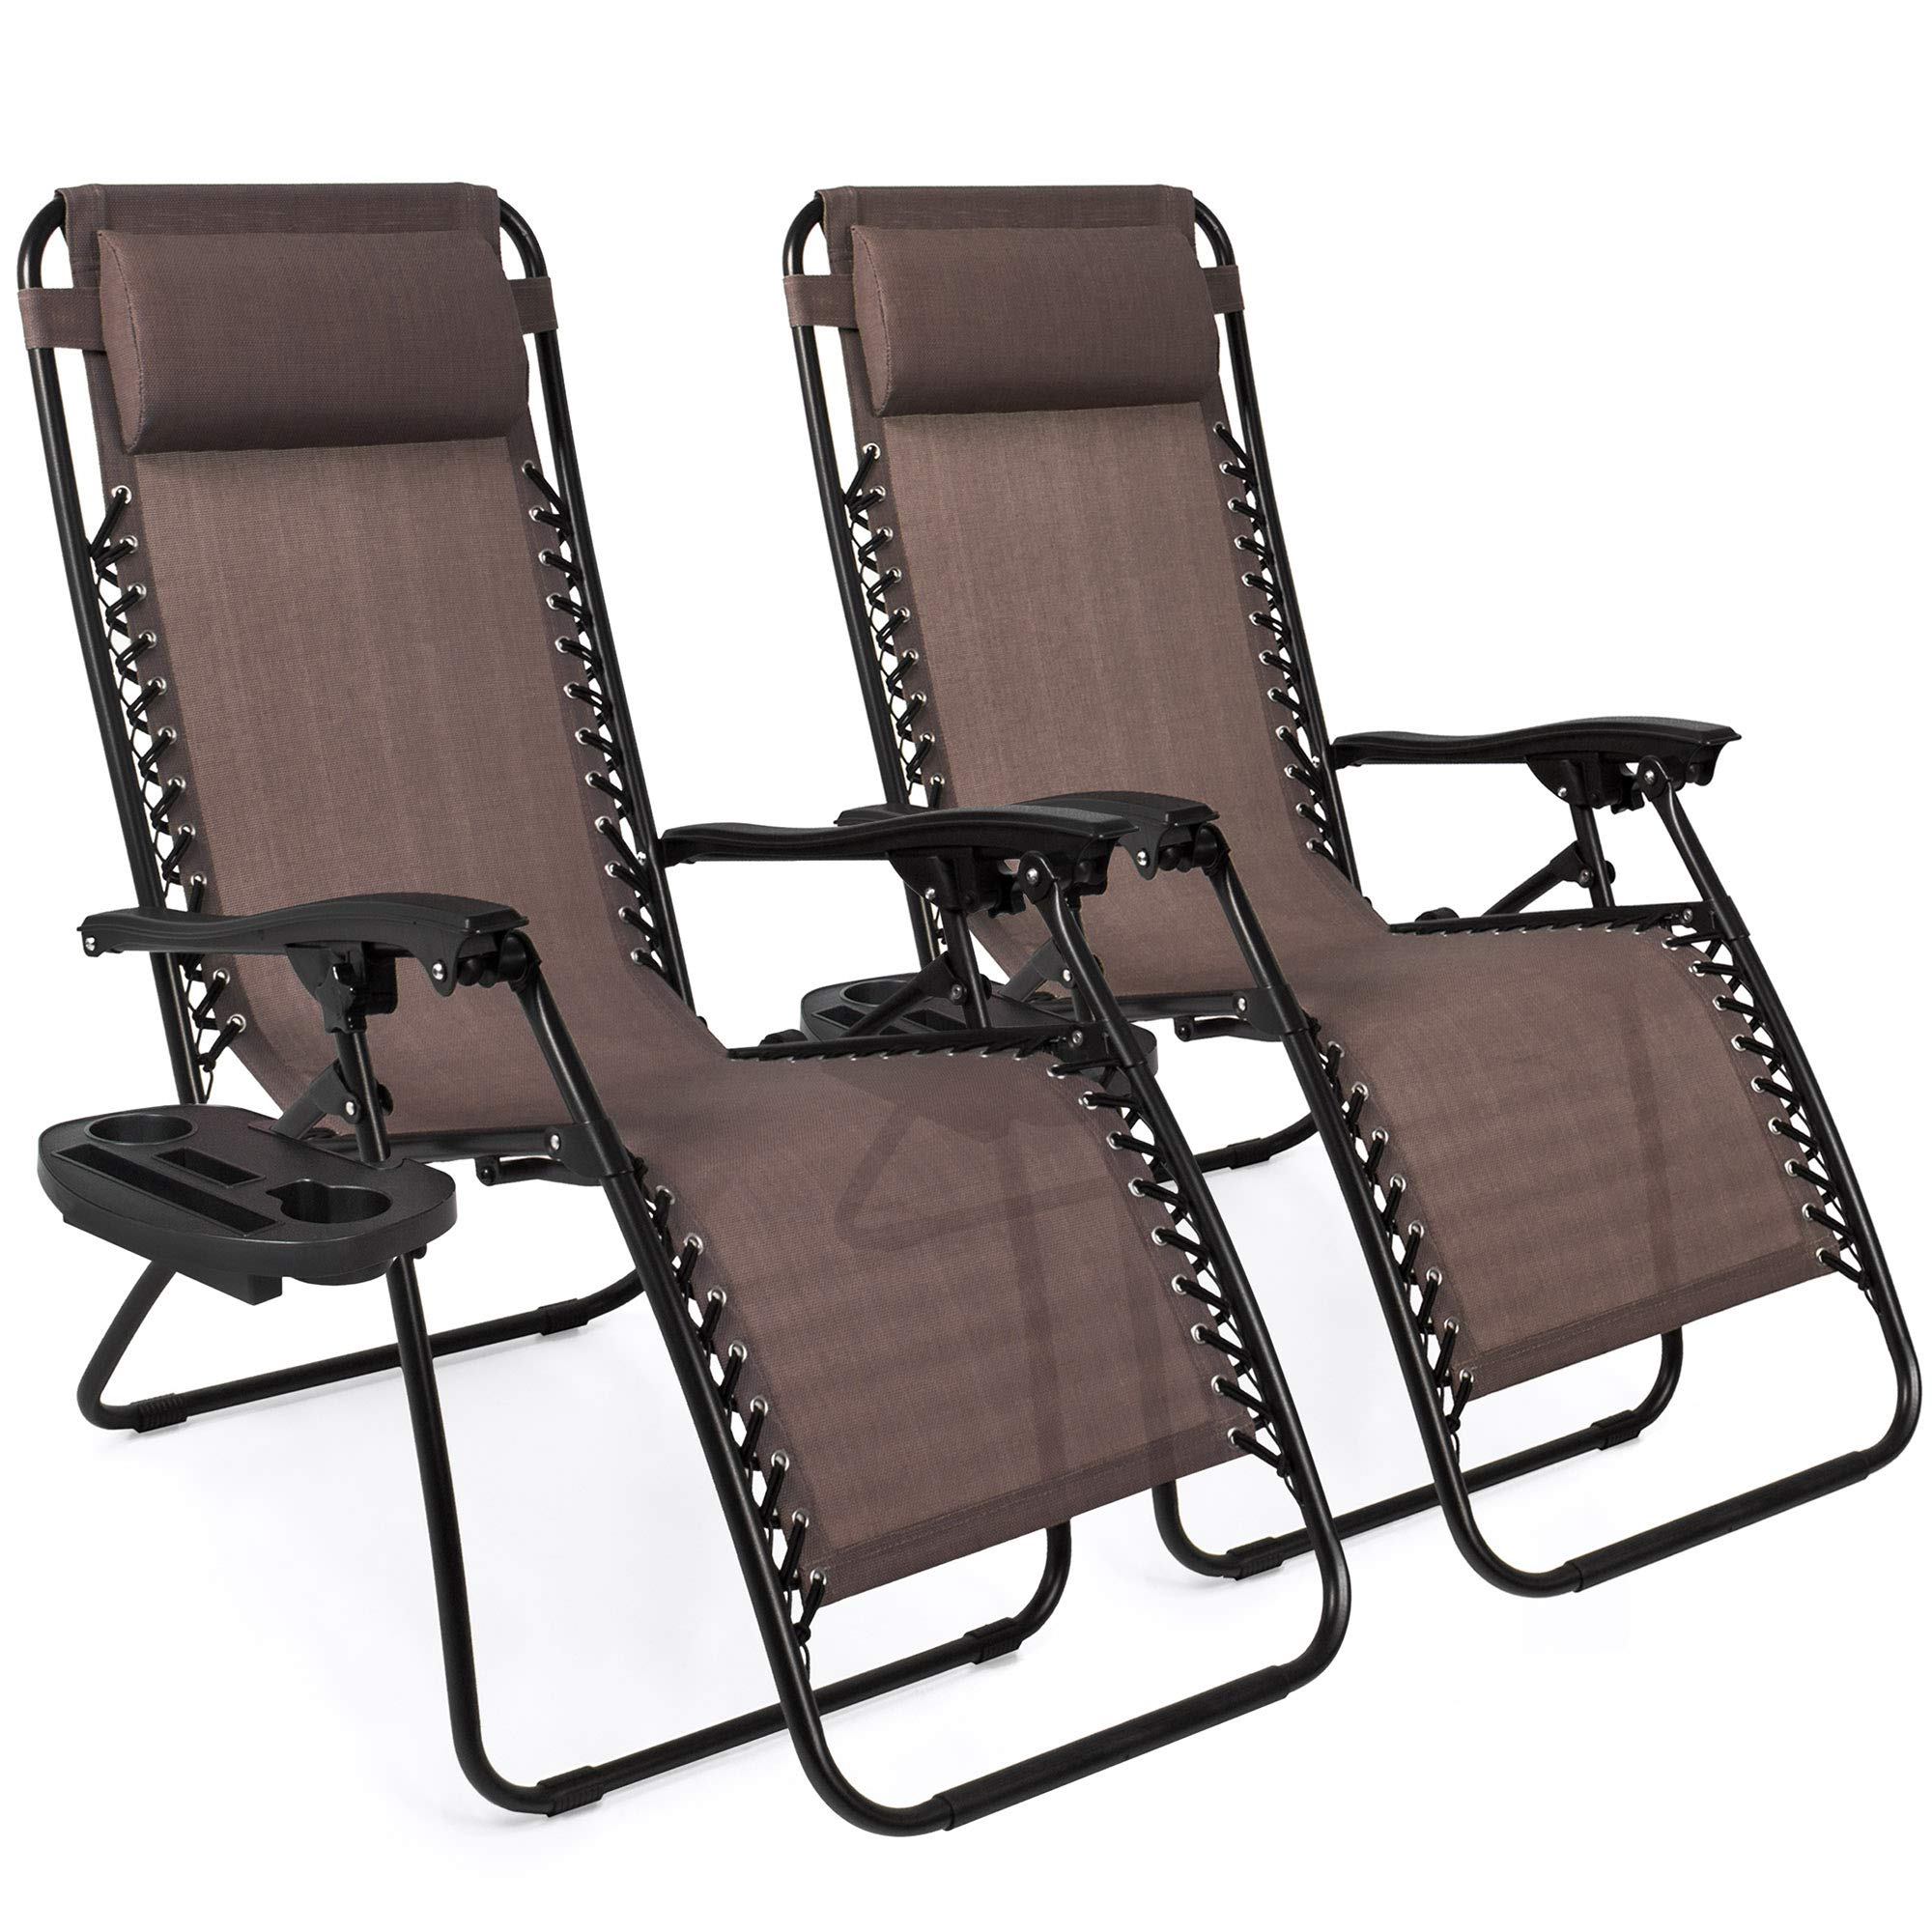 Best Choice Products Set of 2 Adjustable Zero Gravity Lounge Chair Recliners for Patio, Pool w/ Cup Holders - Brown by Best Choice Products